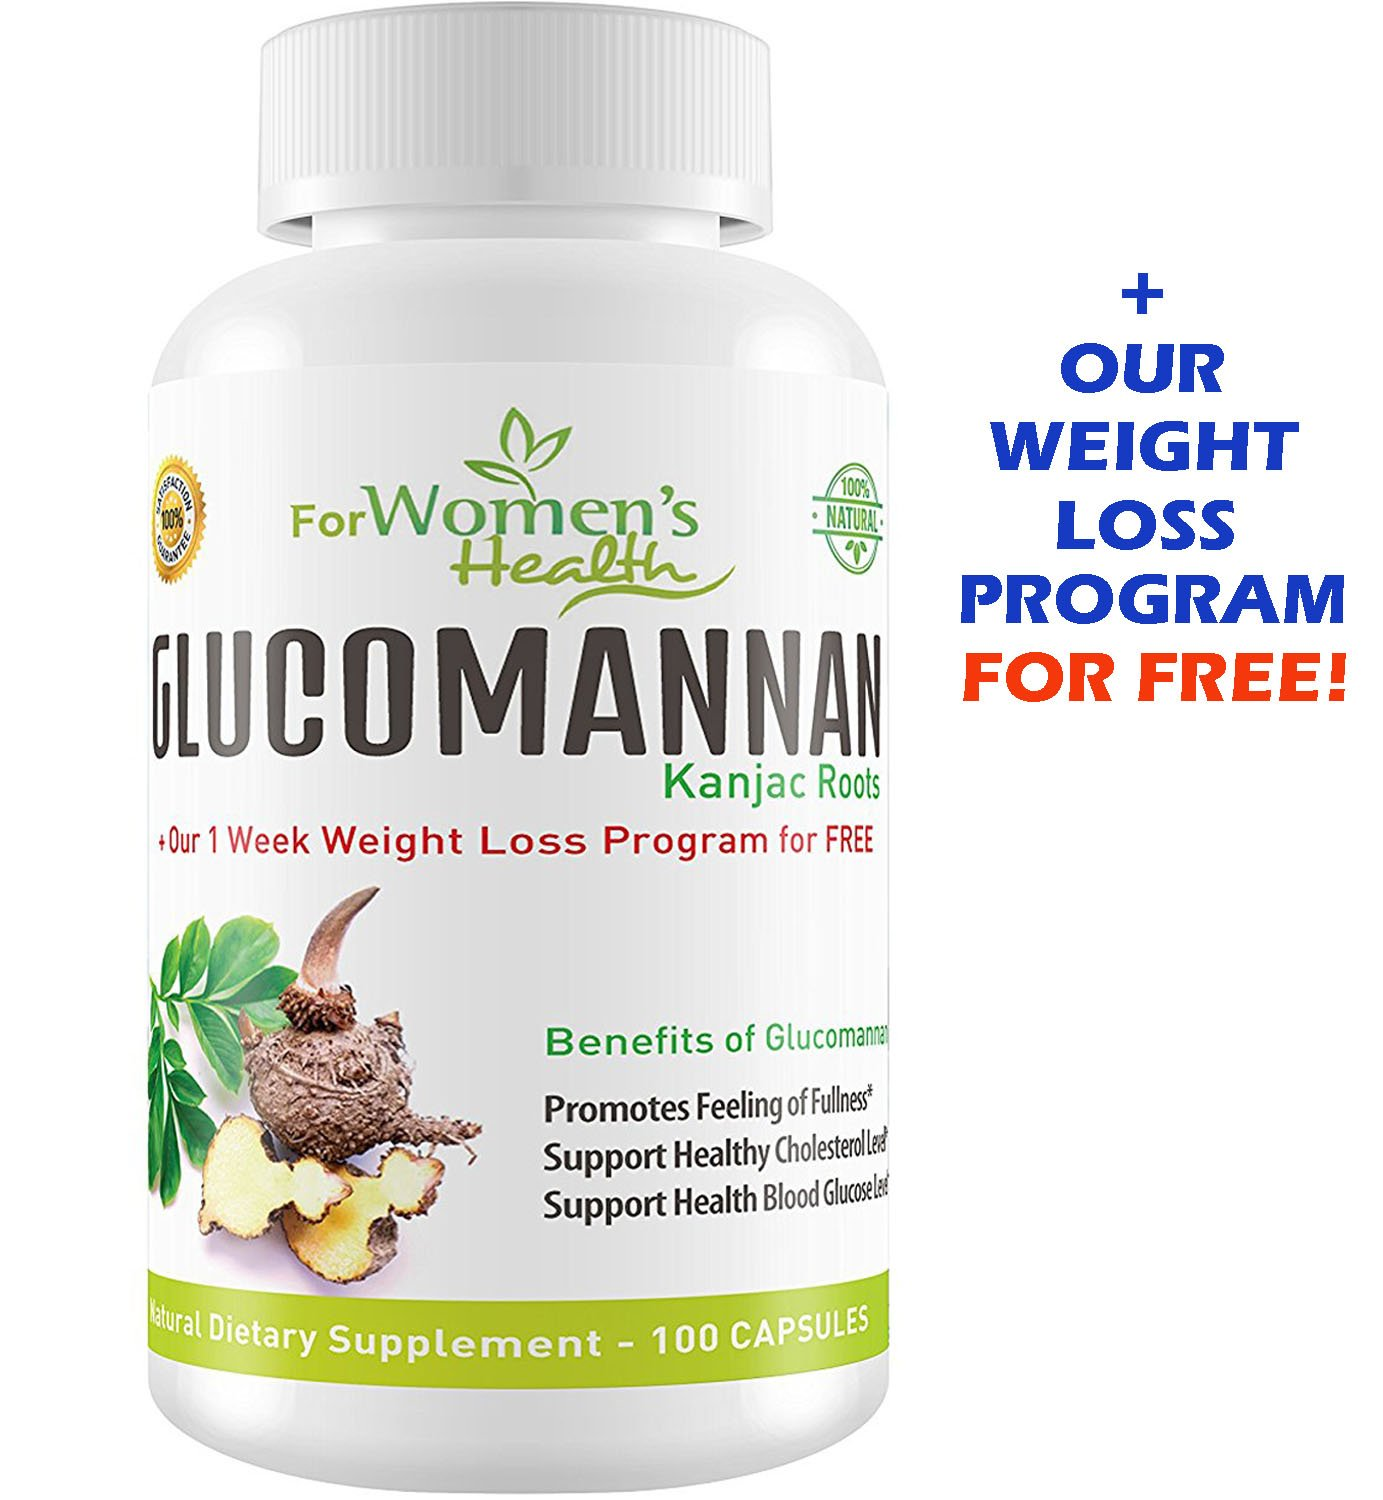 Glucomannan Capsules from Konjac Root Powder - Glucomannan Weight Loss Pills + Our Weight Loss Program For Free - Natural Safe Appetite Suppressant For Women - 100 Capsules - 700 mgs